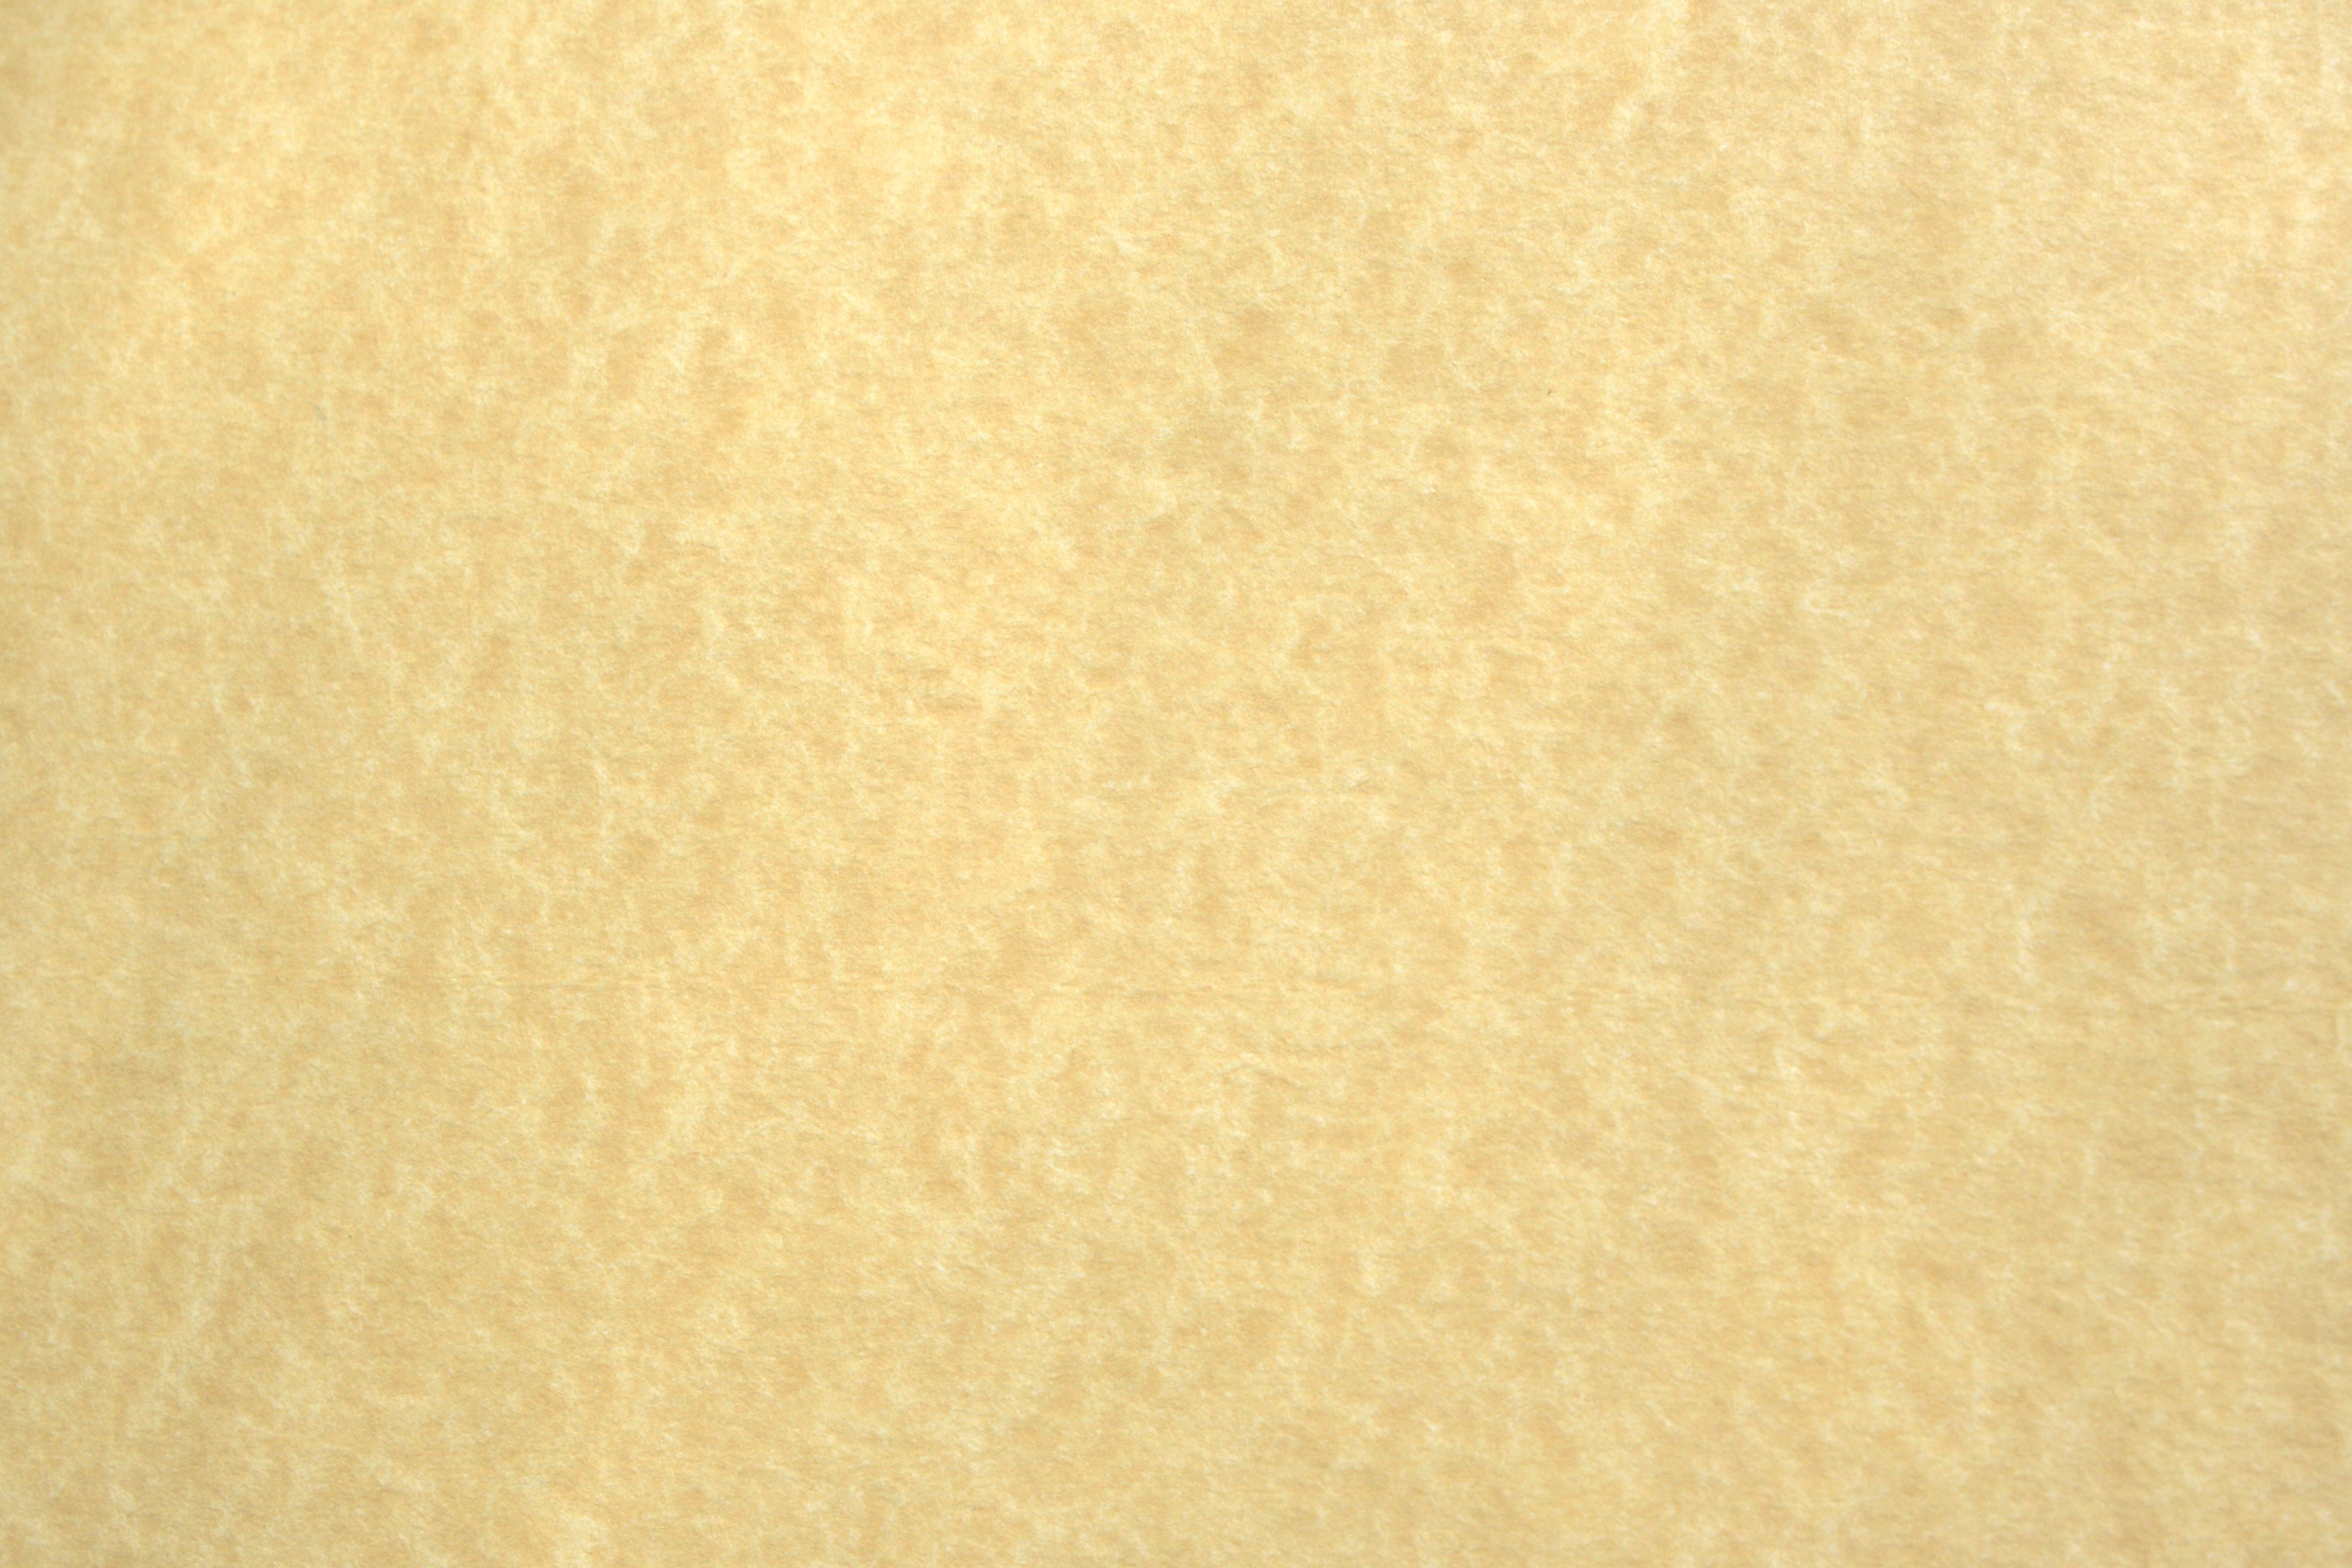 Light Colored Parchment Paper Texture   High Resolution Photo 3888x2592